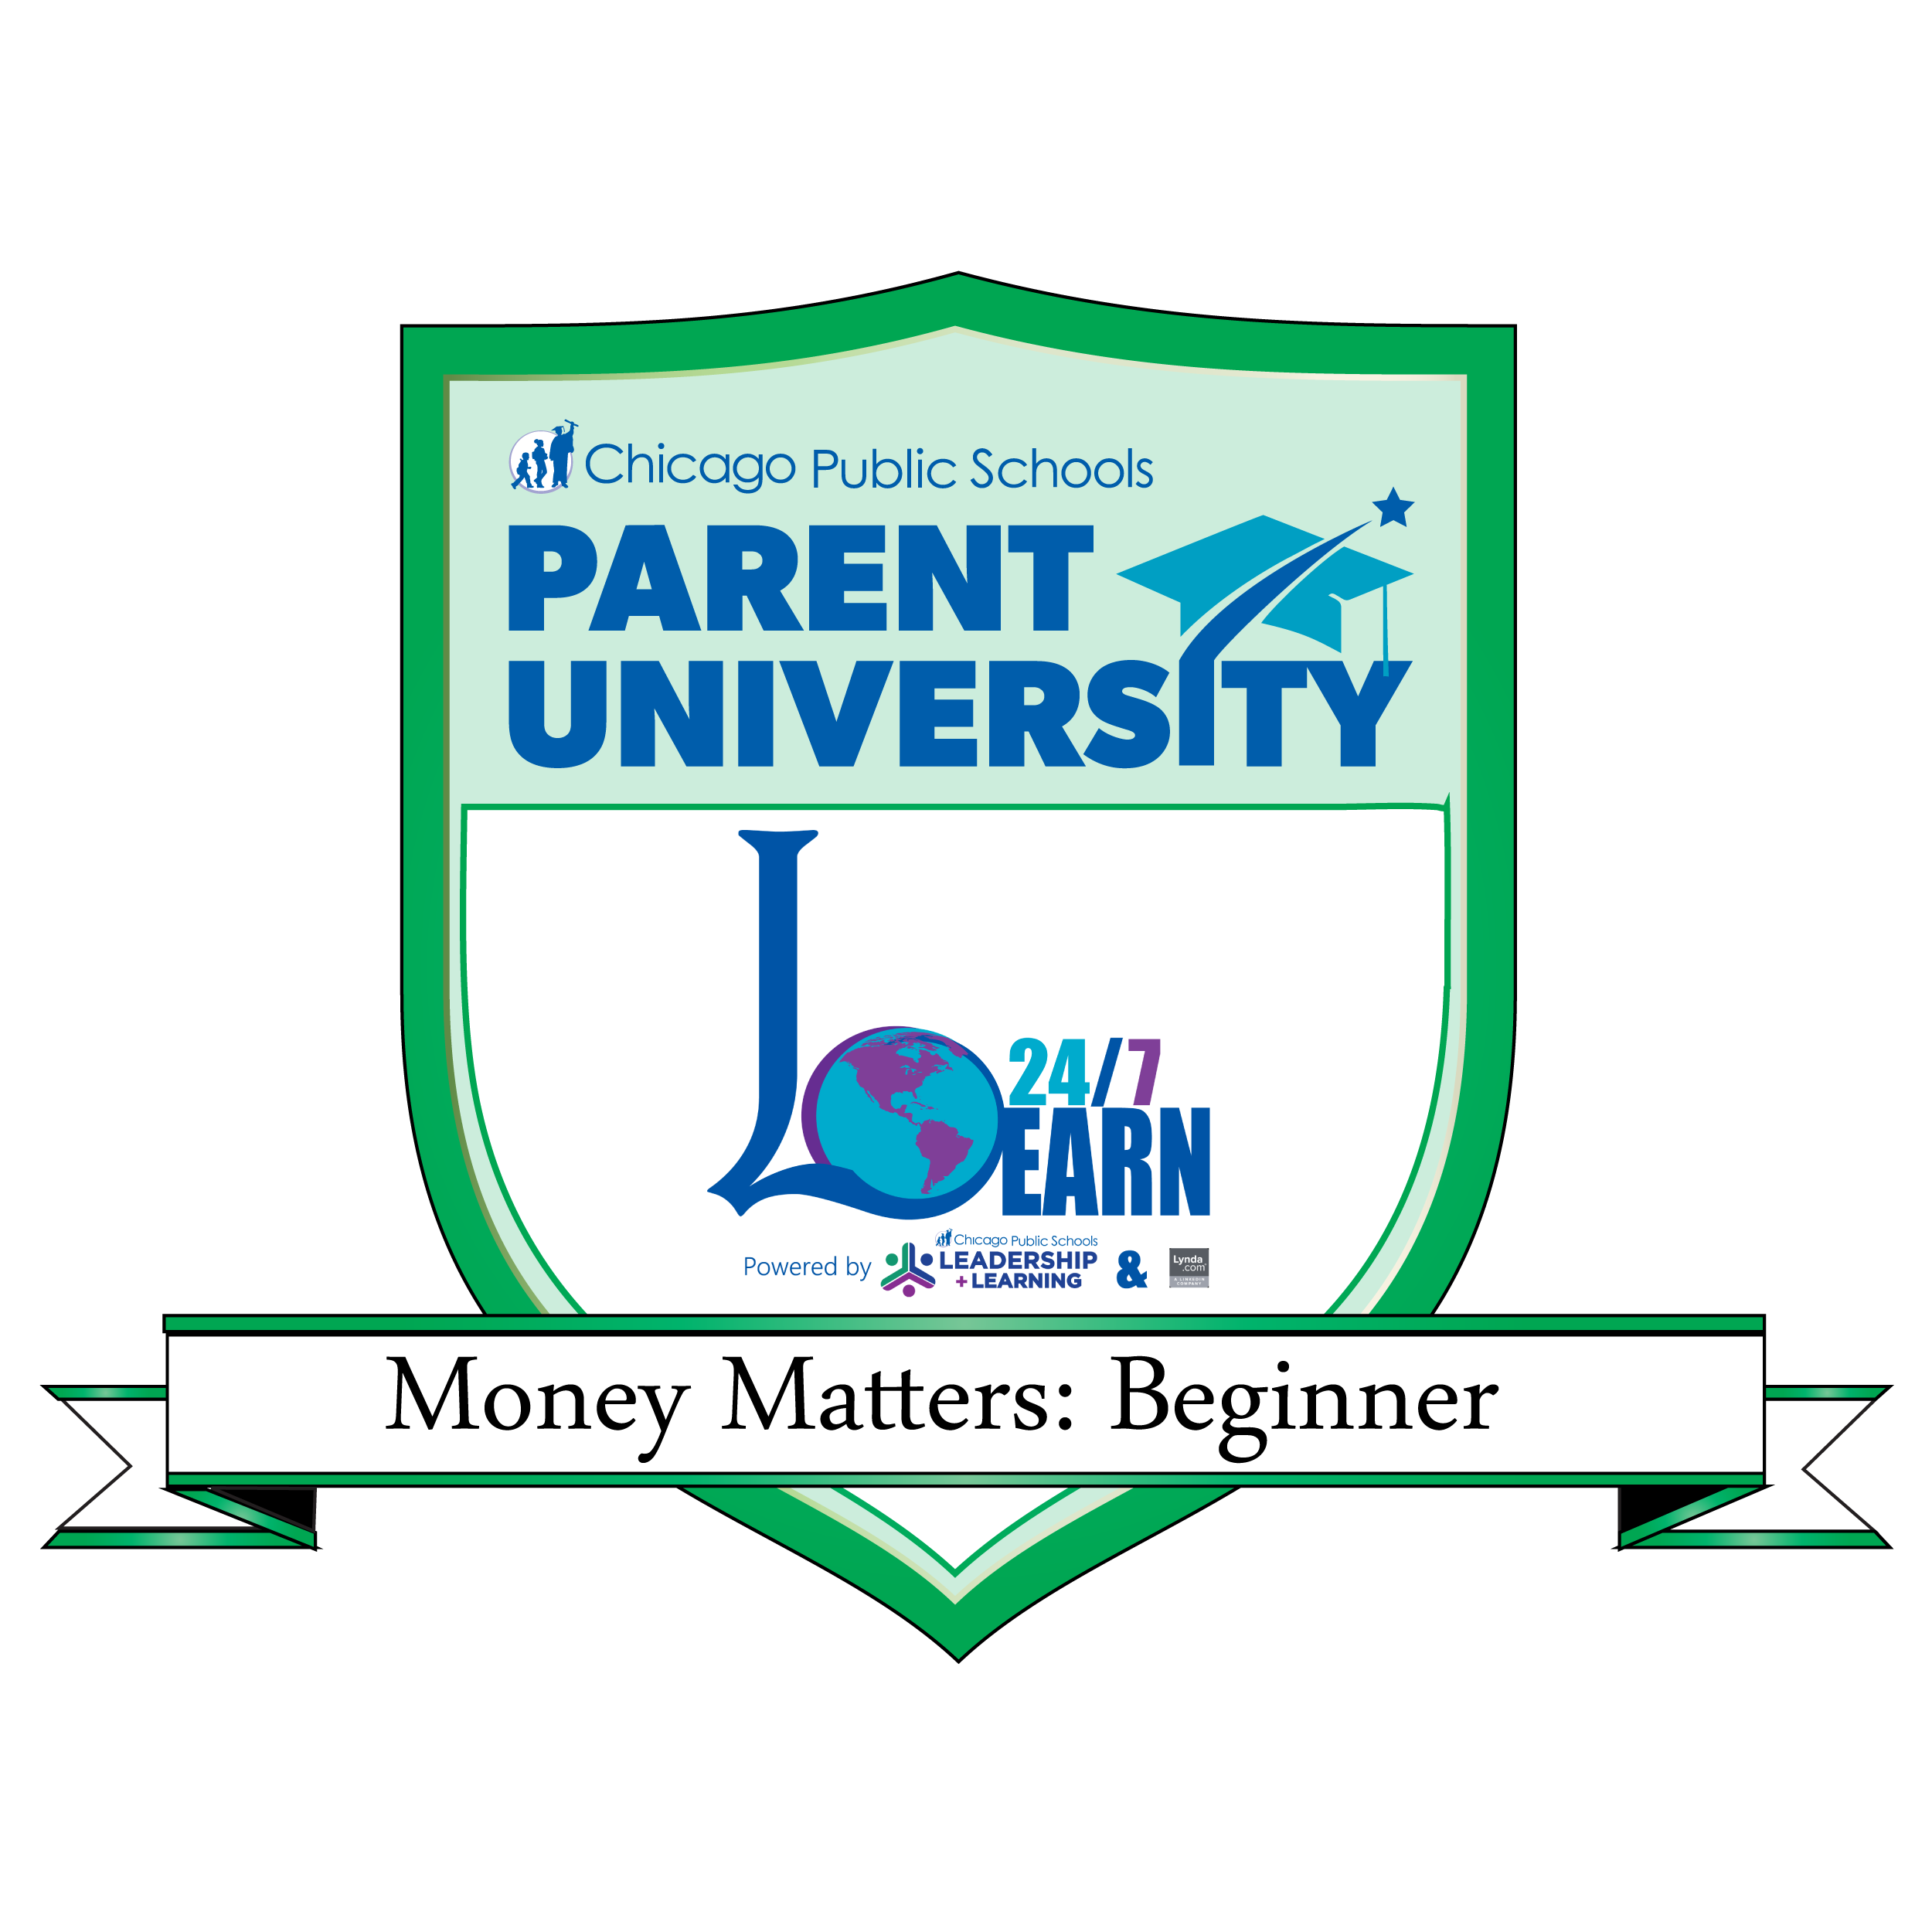 Money Matters: Beginner